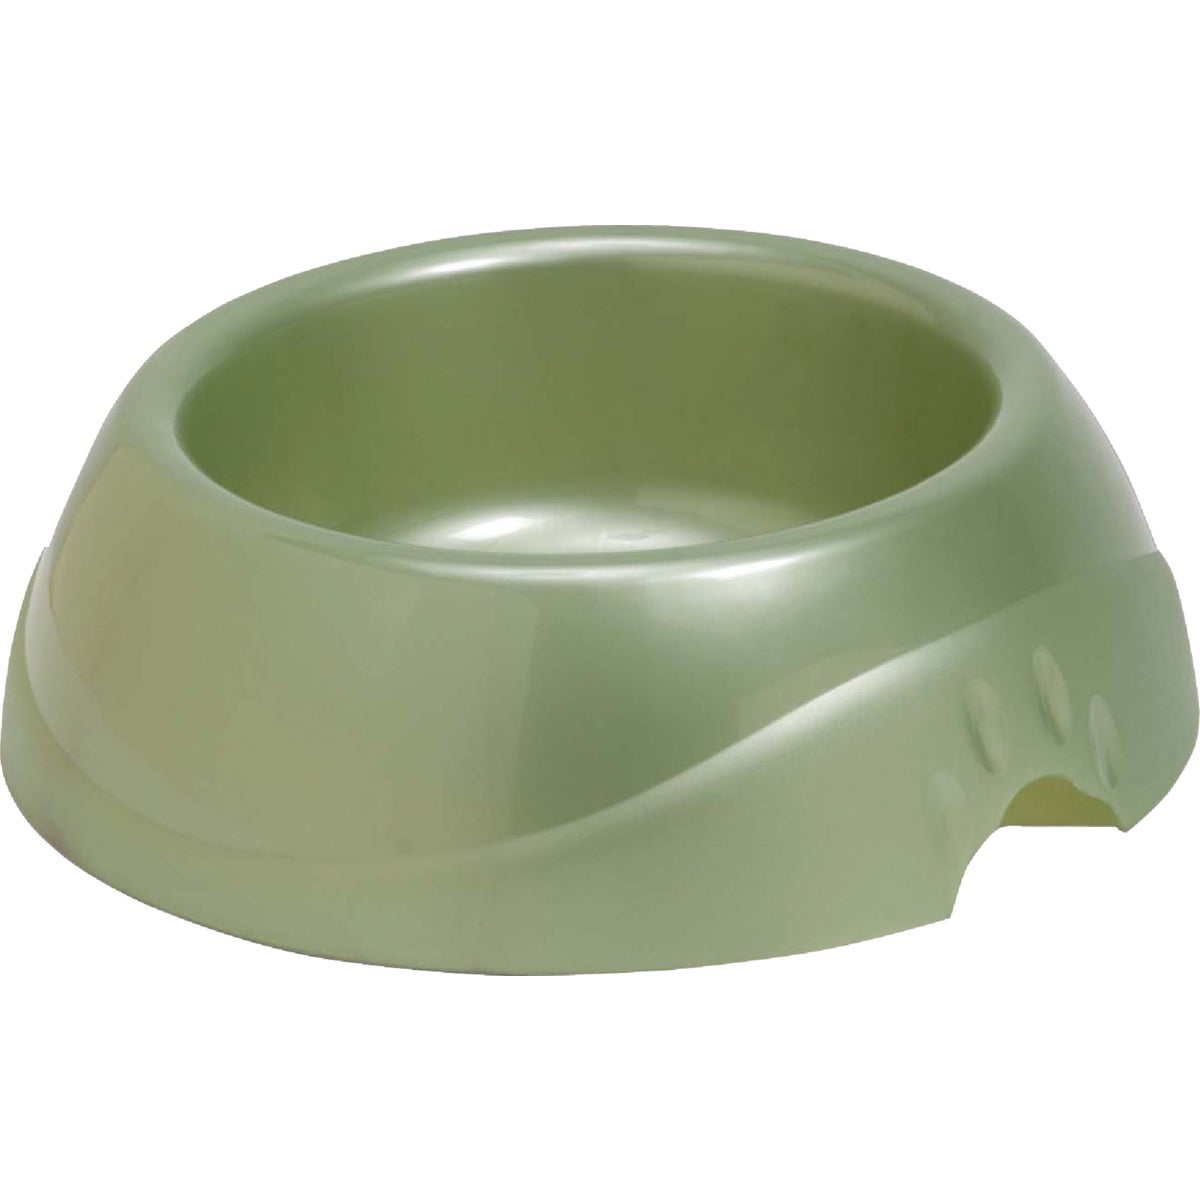 LARGE DESIGNER PET DISH